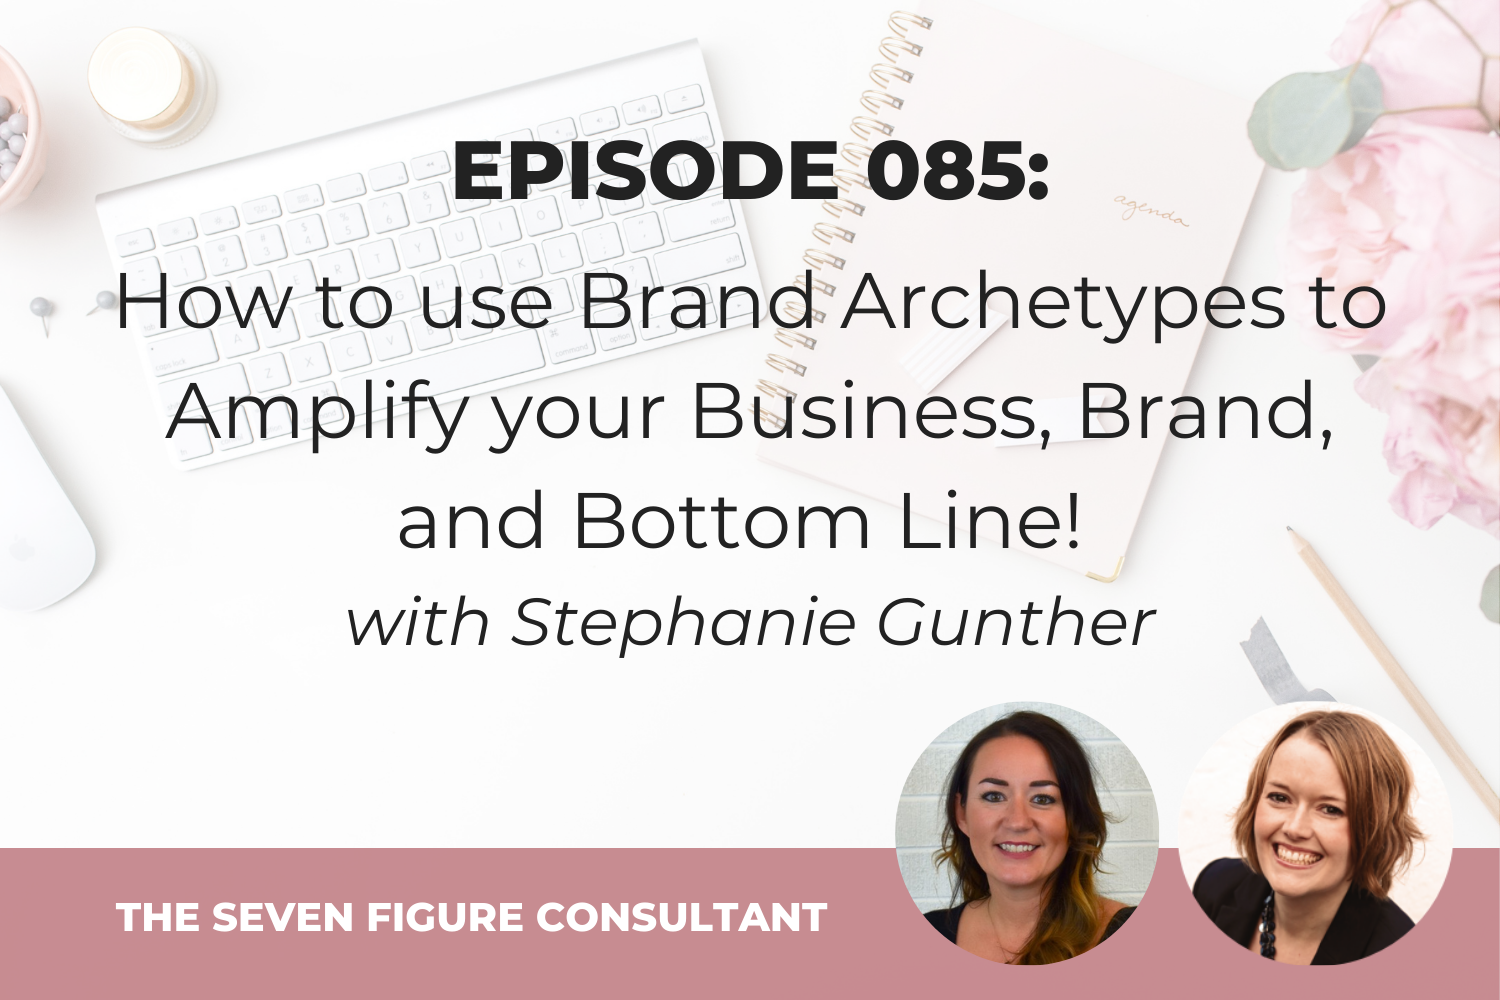 You are currently viewing Episode 085: How to use Brand Archetypes to Amplify your Business, Brand, and Bottom Line!